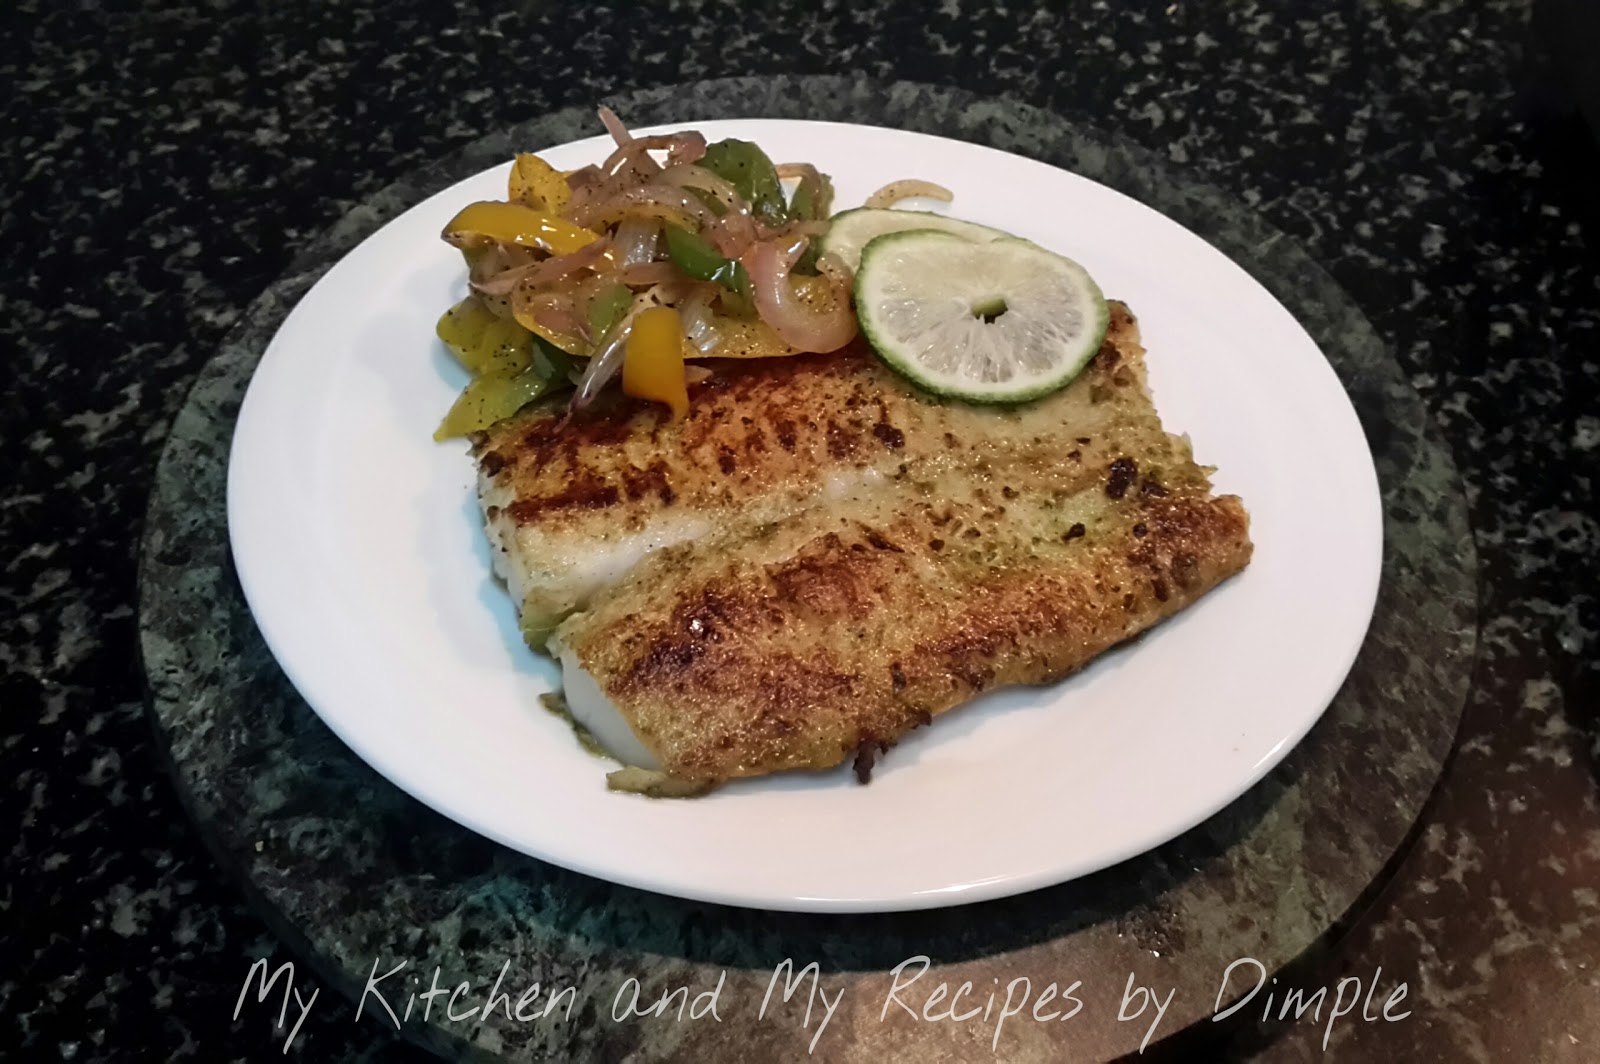 My Kitchen And My Recipes Grilled Fish With Sauted Vegetables